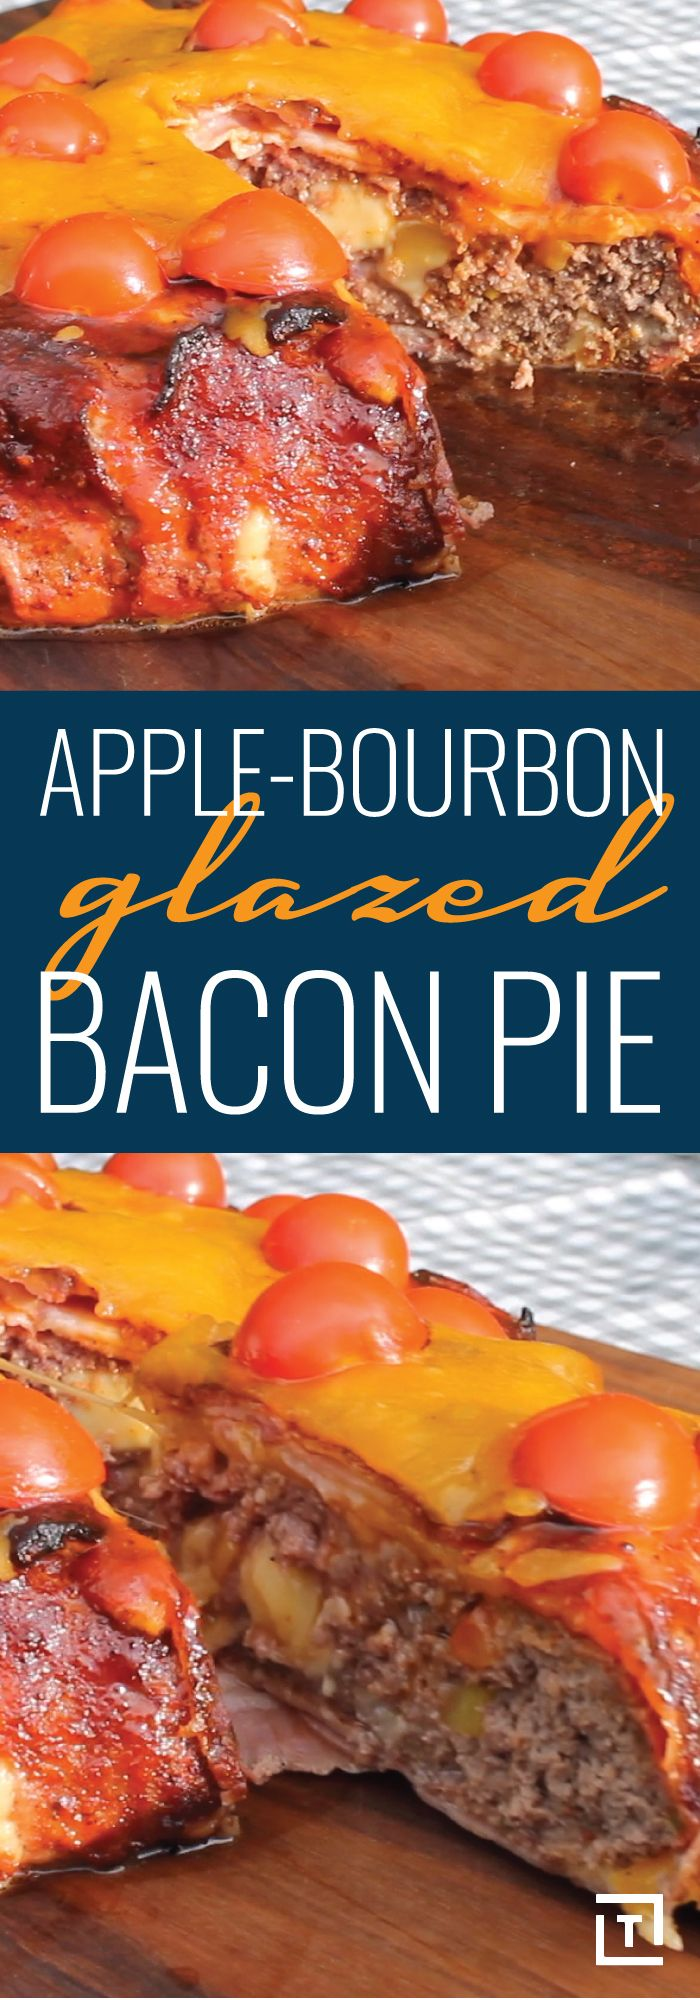 Maybe you're in it for the crispy, loaded bacon; maybe you're in it for the apple-infused bourbon glaze; maybe you're just a diehard barbecue enthusiast -- whatever the reason, you need to try this easy recipe by 0815BBQ. It takes all of the aforementioned ingredients and combines them in one epic, apple-bourbon glazed bacon pie: a grilled masterpiece, boasting bold flavors through copious amounts of freshly grated cheese, juicy meat, and smooth, savory bourbon sauce. Keep calm and bacon.